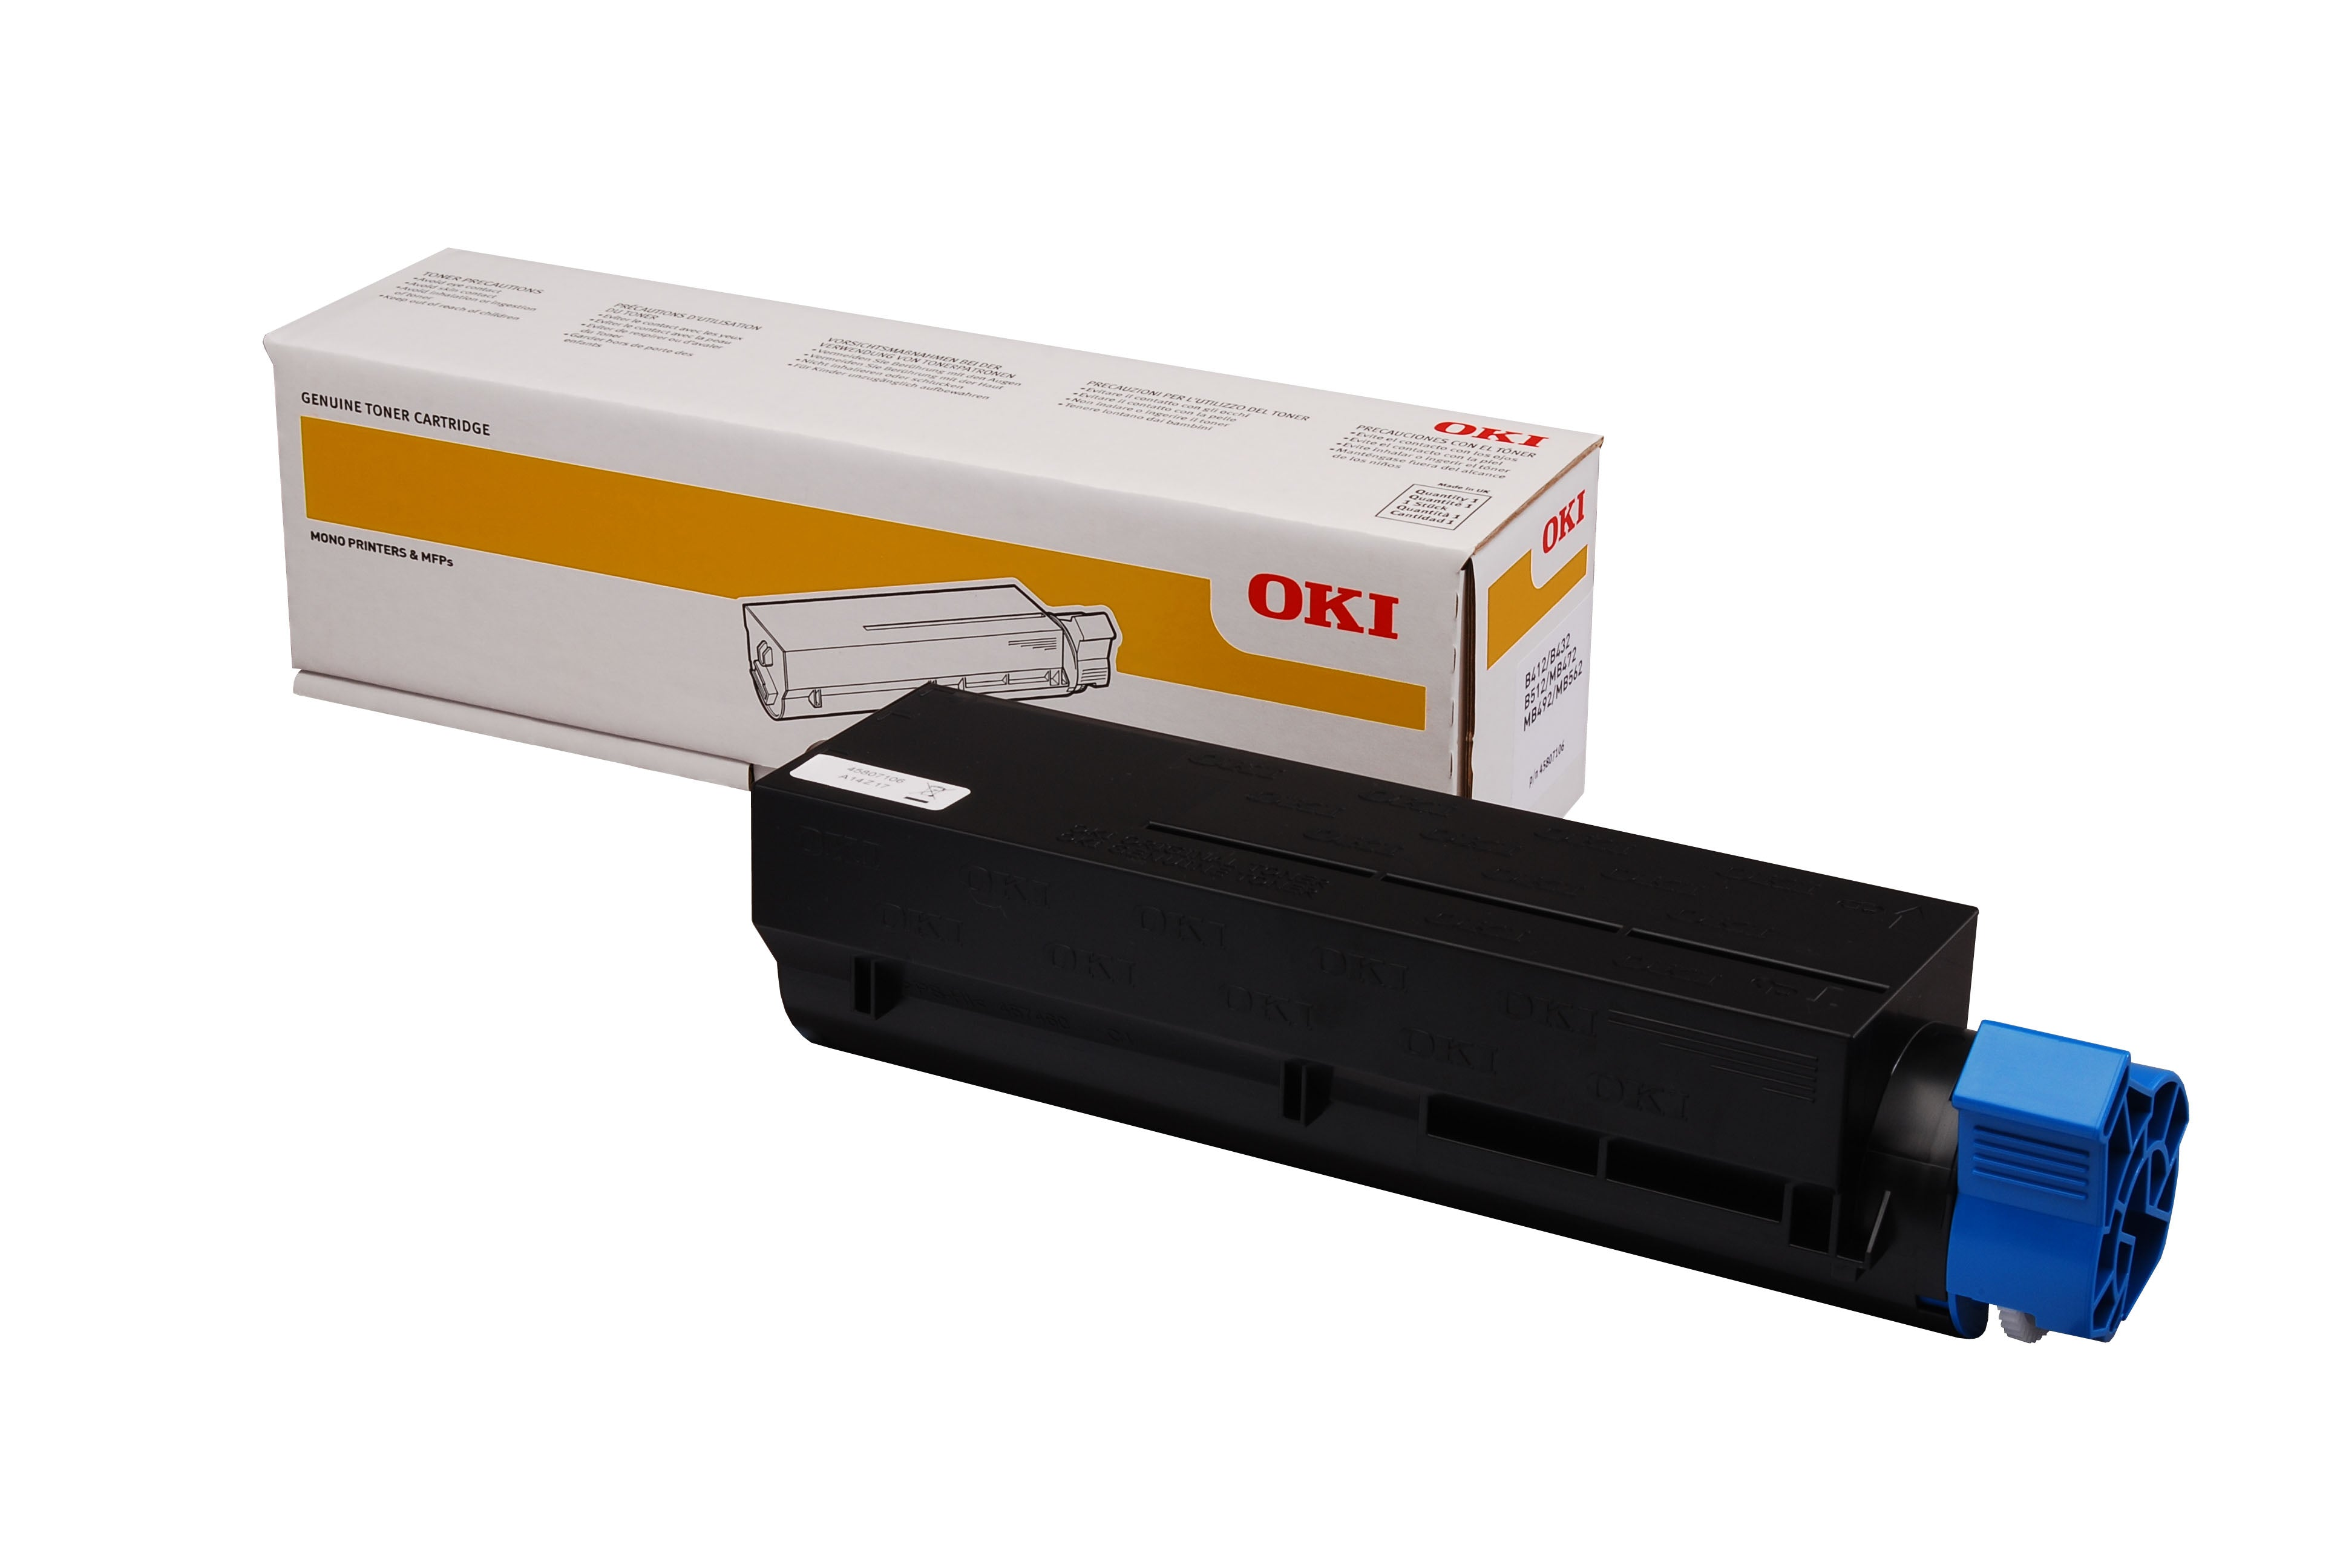 OKI MB492dn Black Toner (7,000 Pages) 45807107